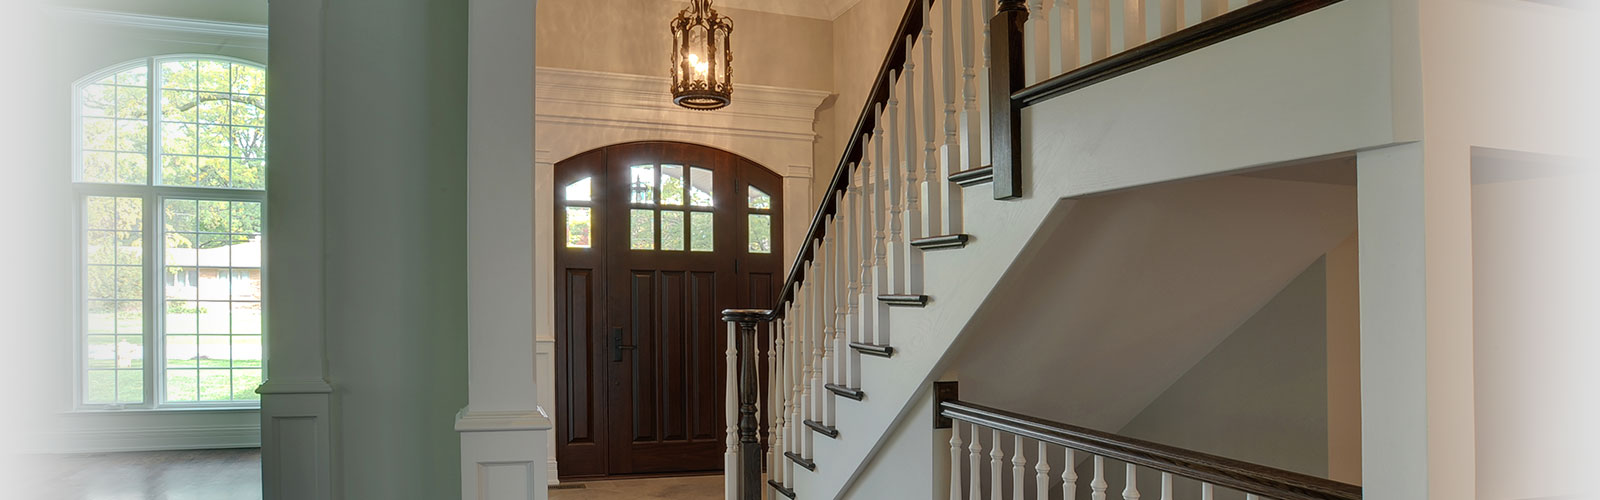 Door 3, Custom Home Builder